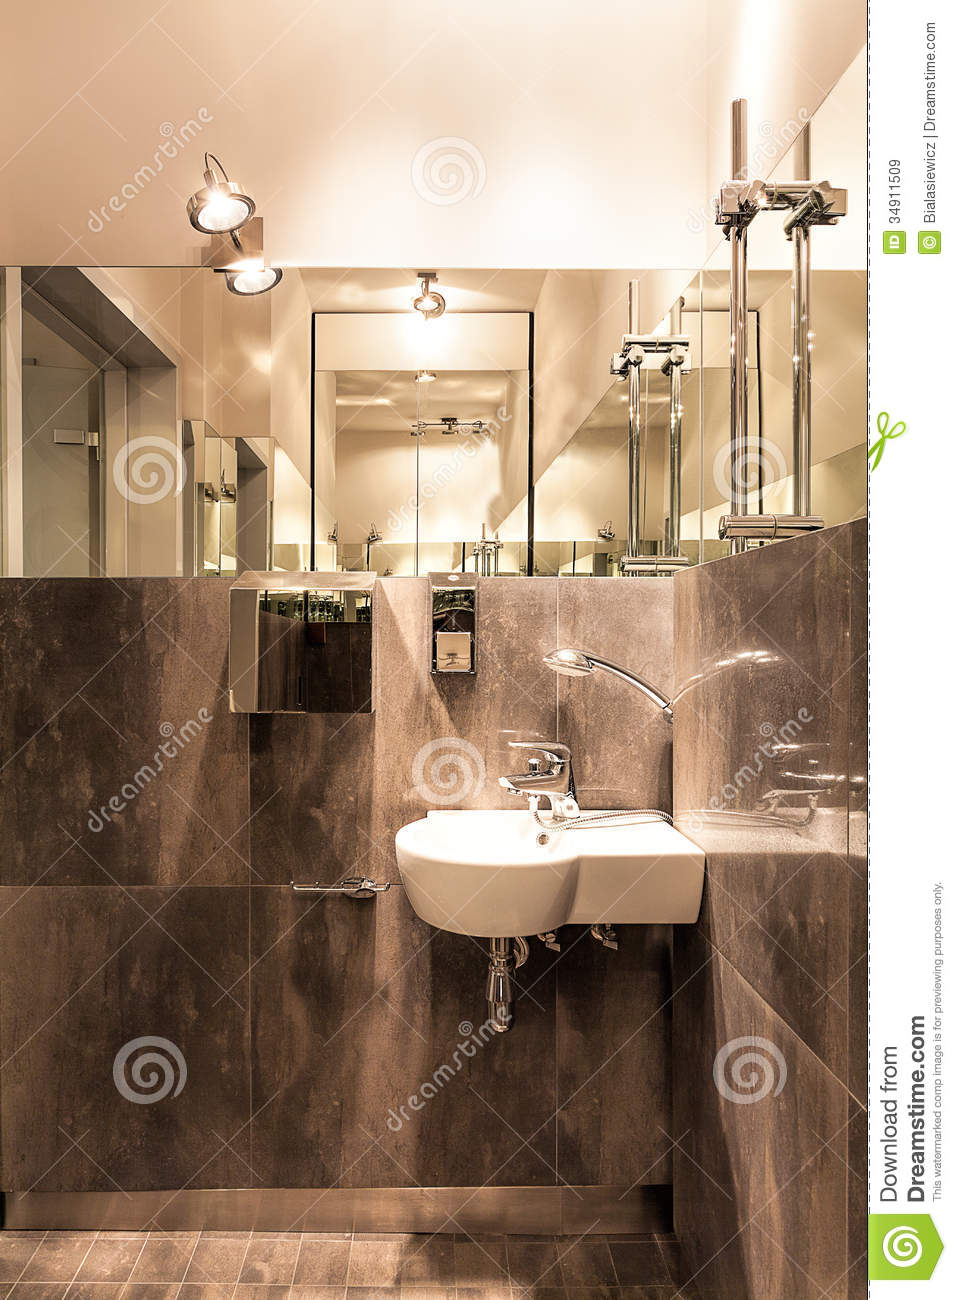 White sink in bathroom royalty free stock images image for Public bathroom sink